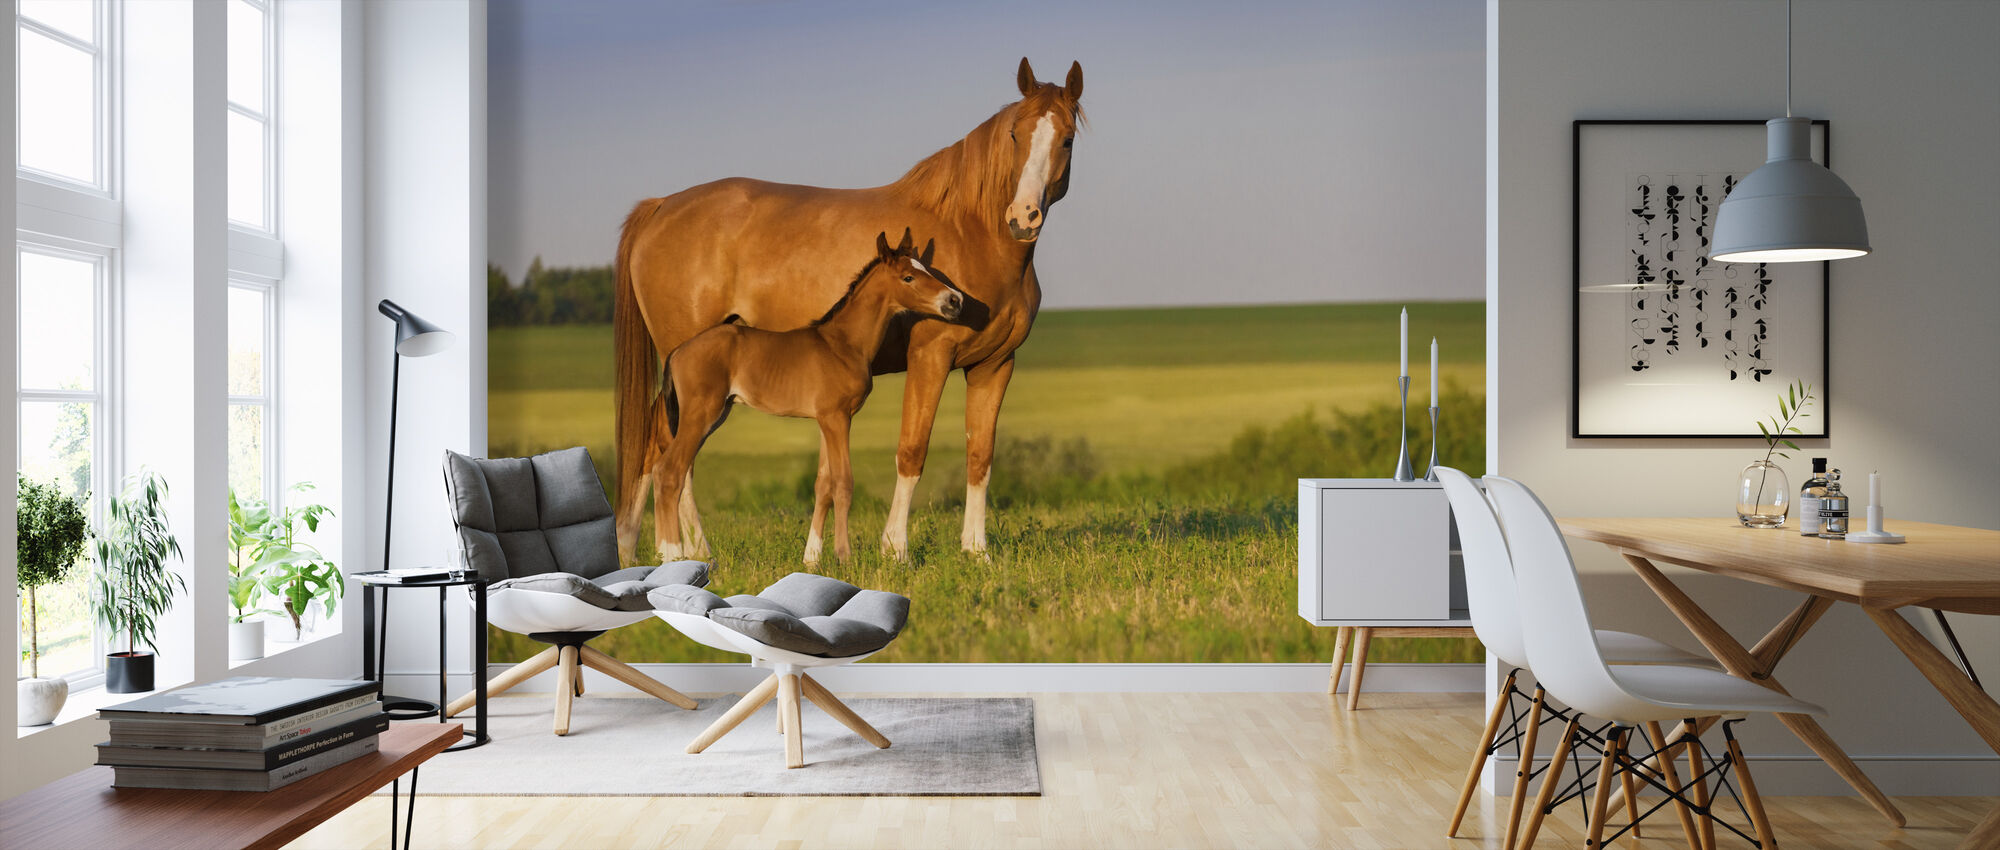 Mare with Foal - Wallpaper - Living Room